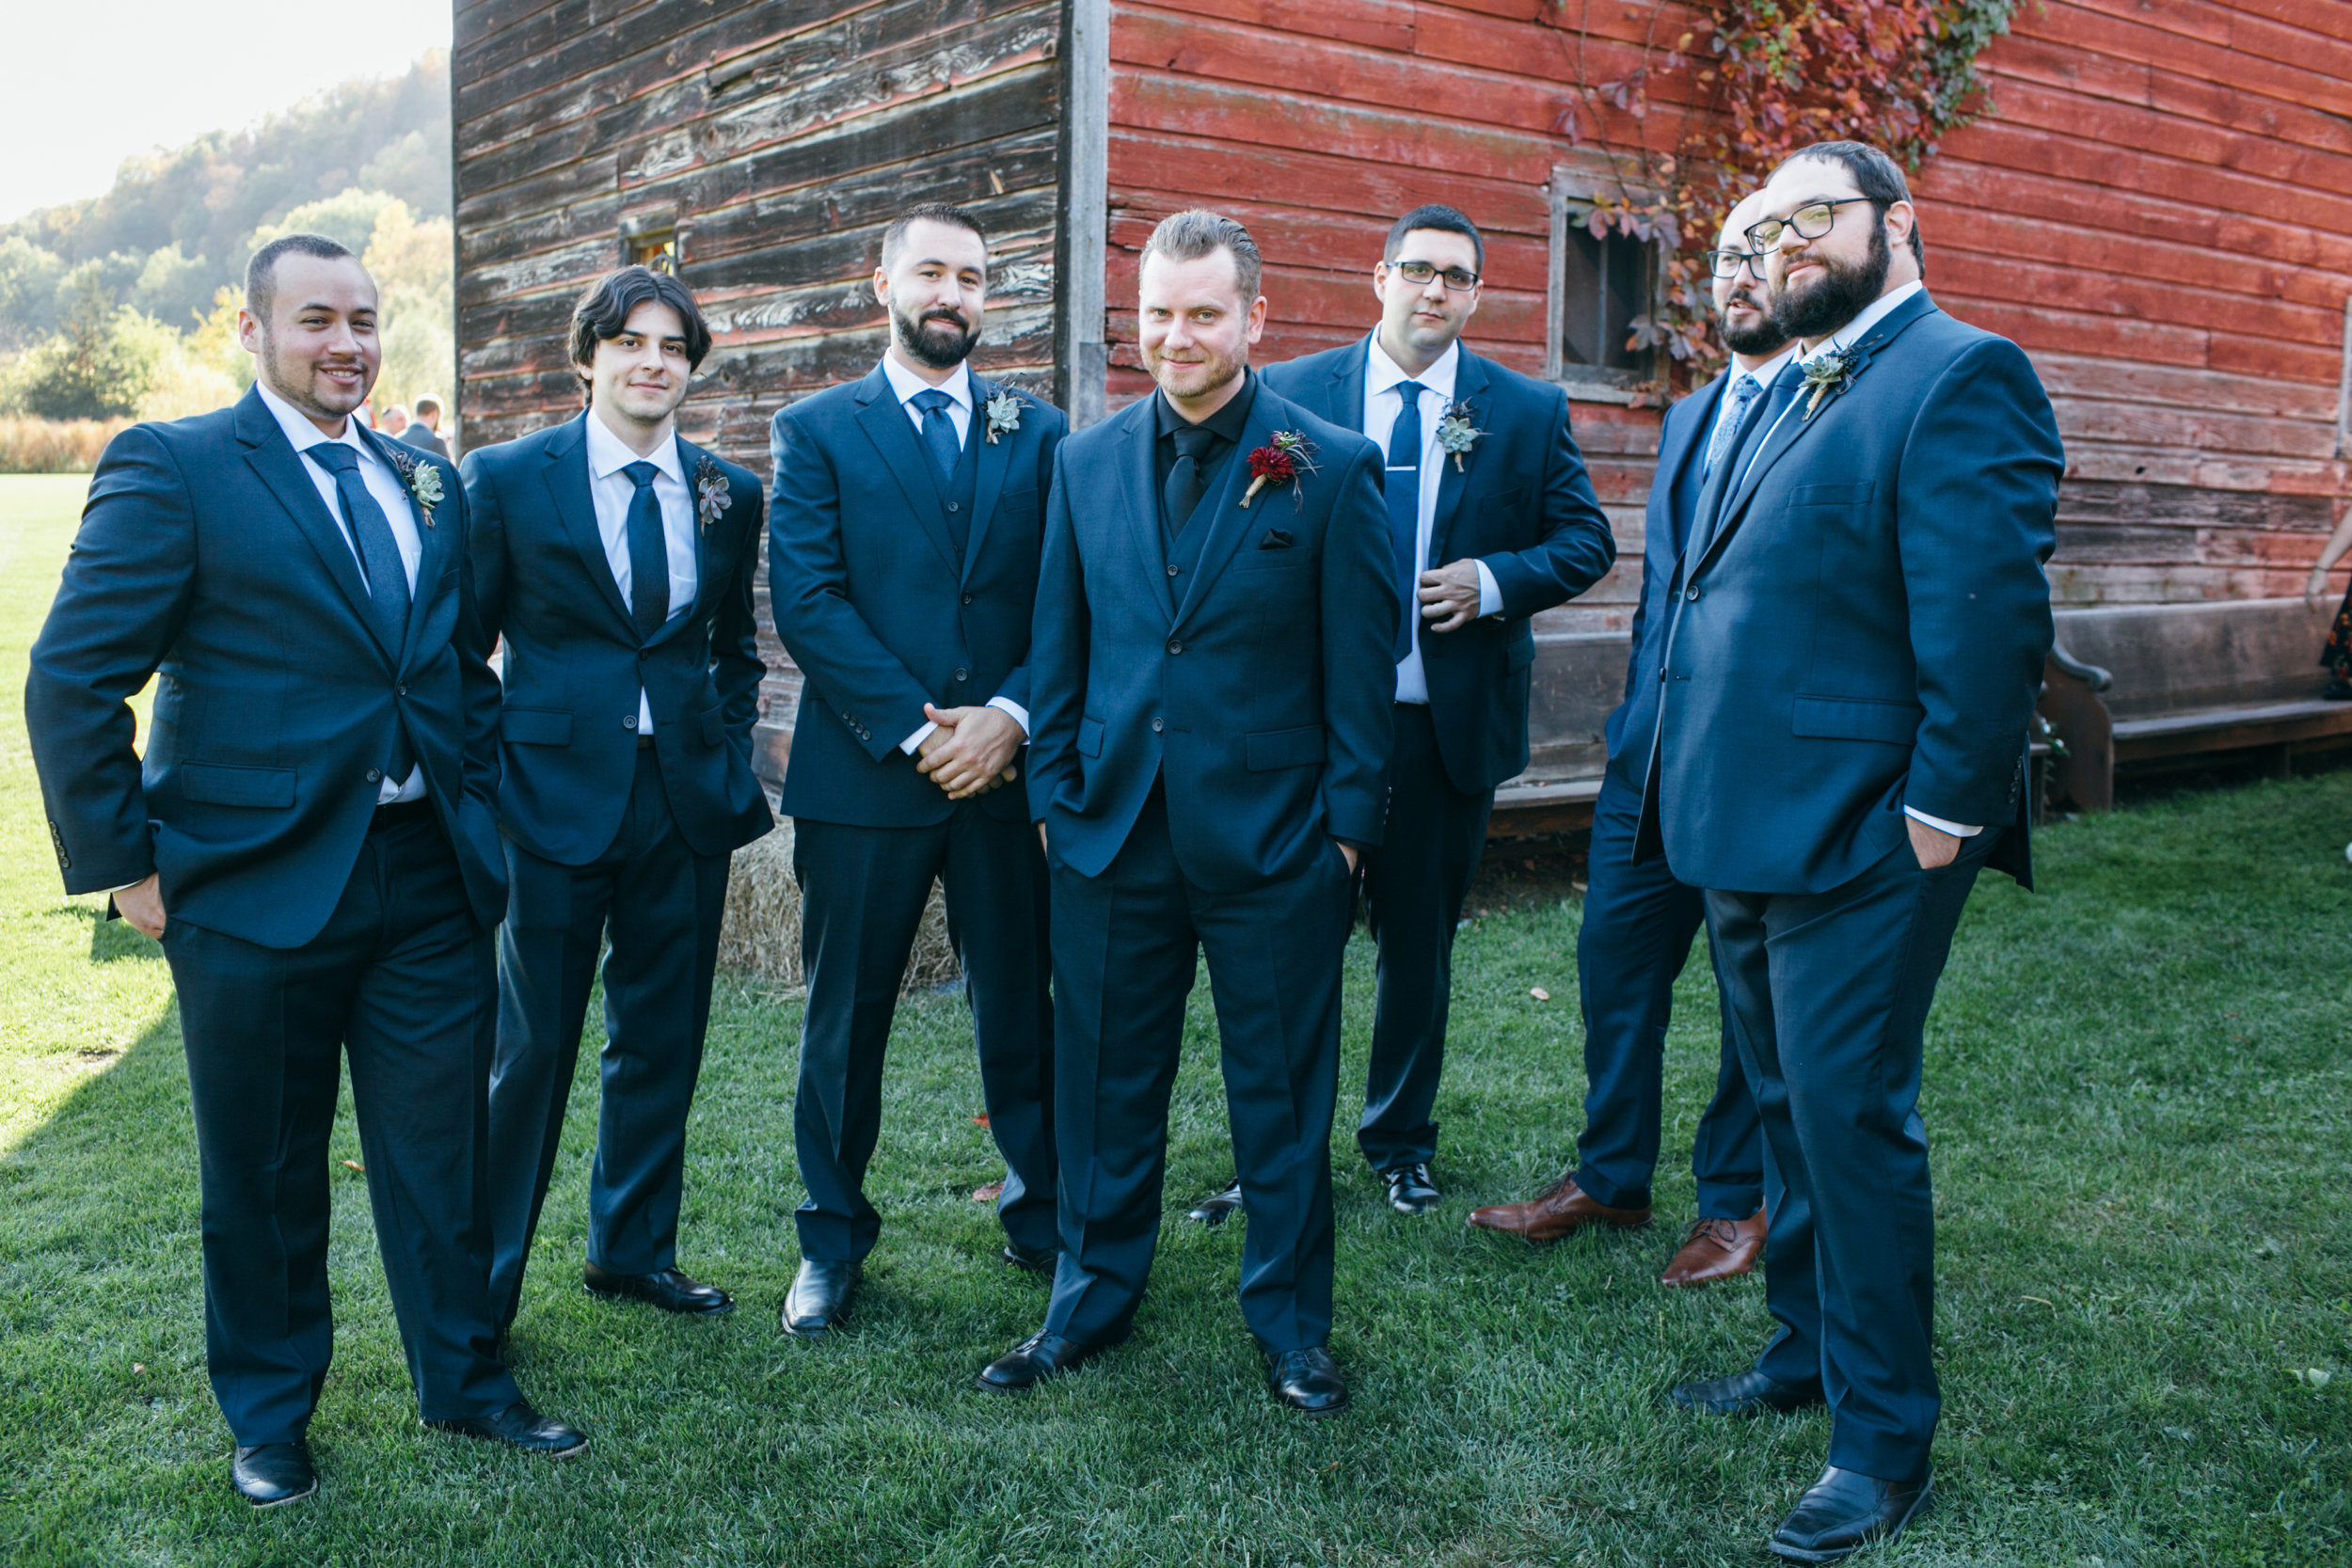 Succulents were also used in the bridesmaid's bouquets and the gentlemen's boutonnieres, distinguishing these personal flowers from the special couple, while pulling in another one their favorite floral elements.